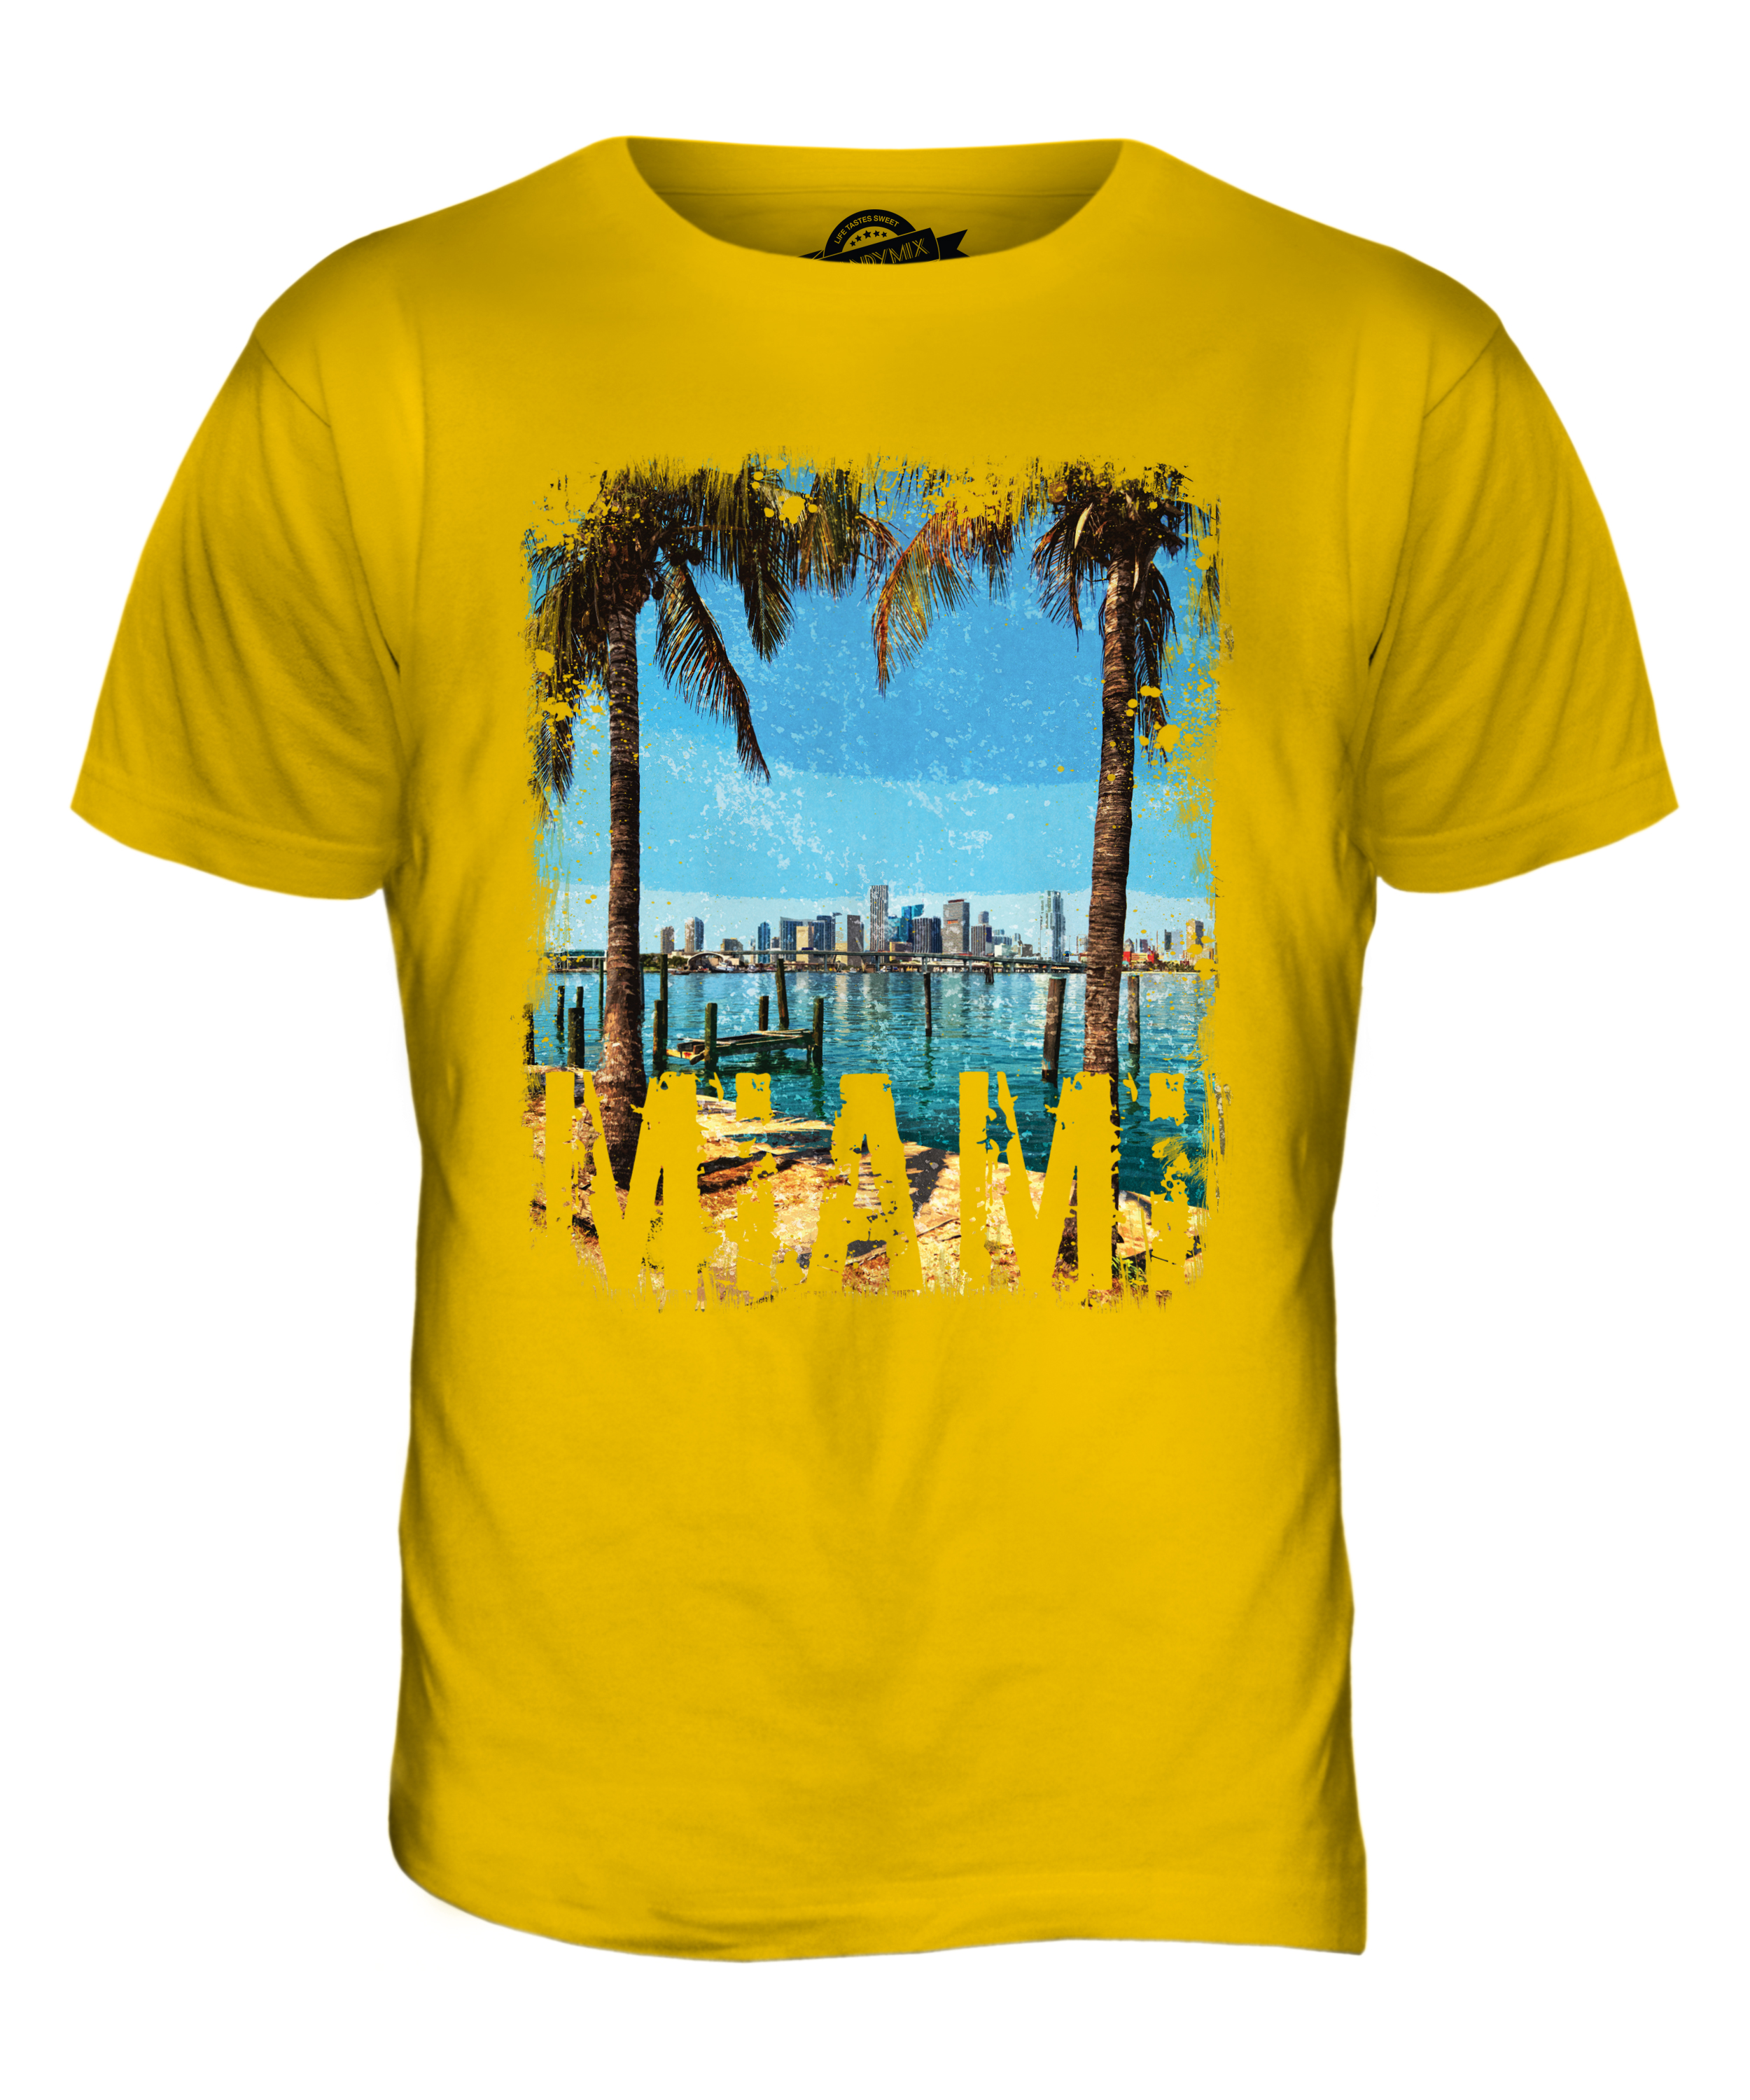 miami grunge print mens t shirt swag top beach florida white short sleeve top ebay. Black Bedroom Furniture Sets. Home Design Ideas